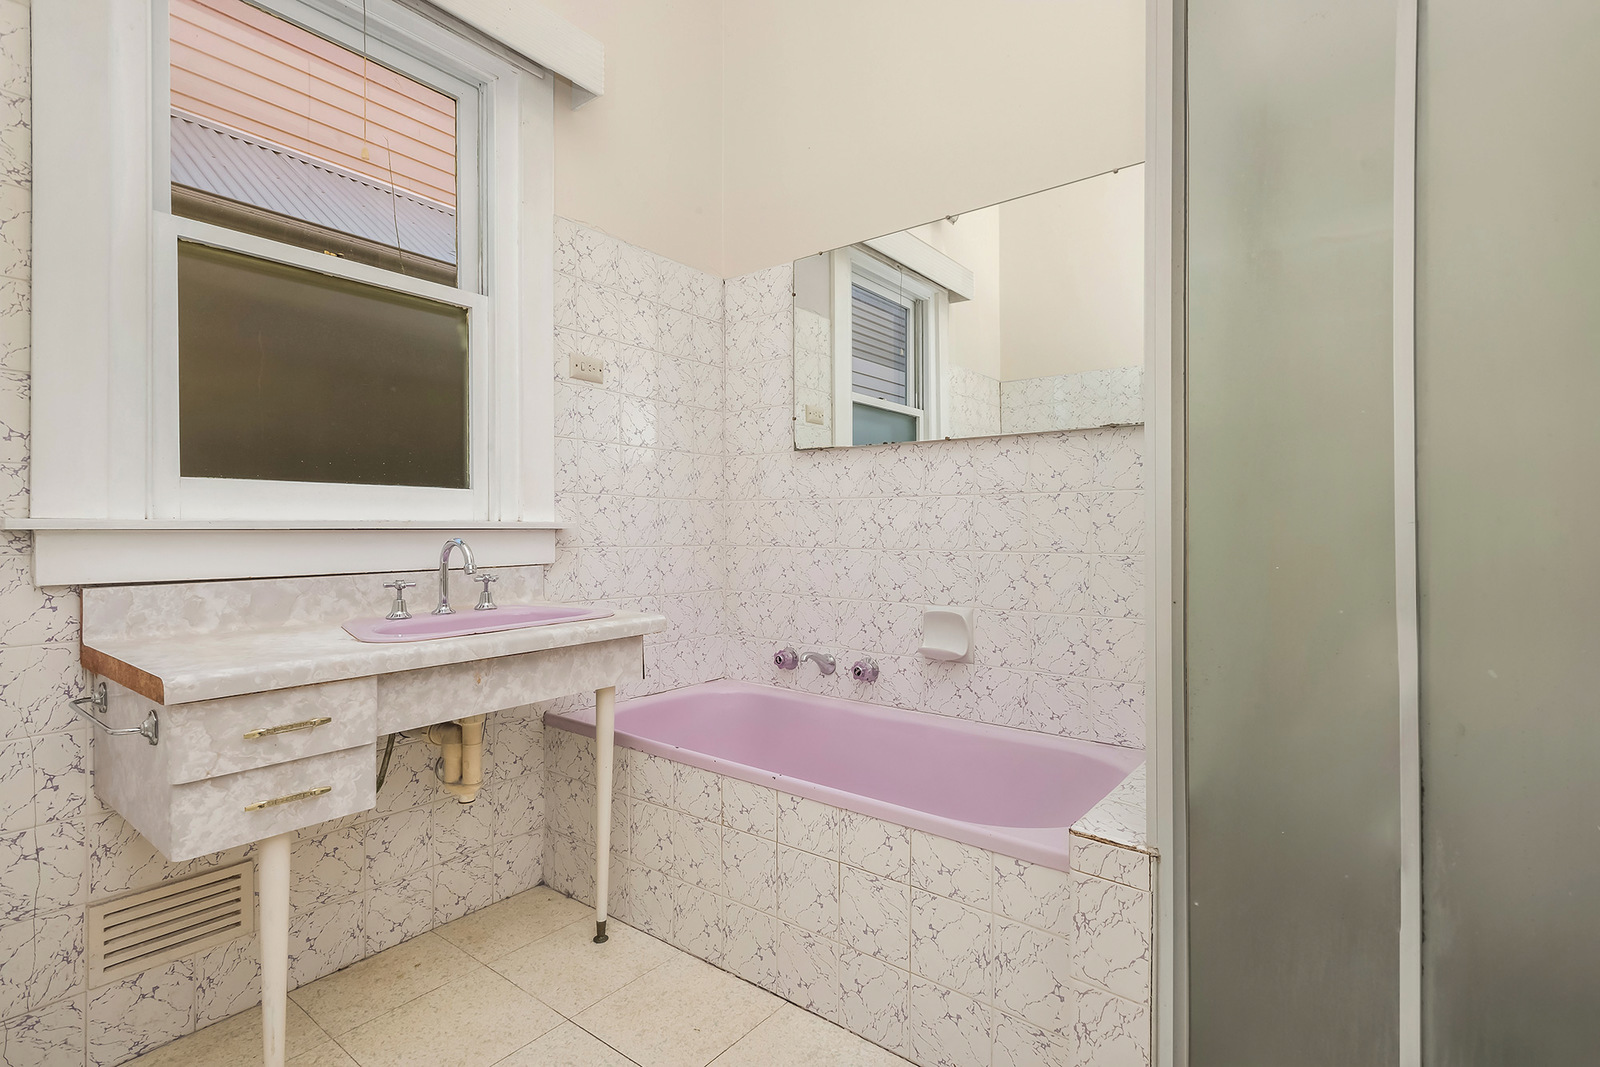 12 Lenore Street, Williamstown 3016 - Image 7